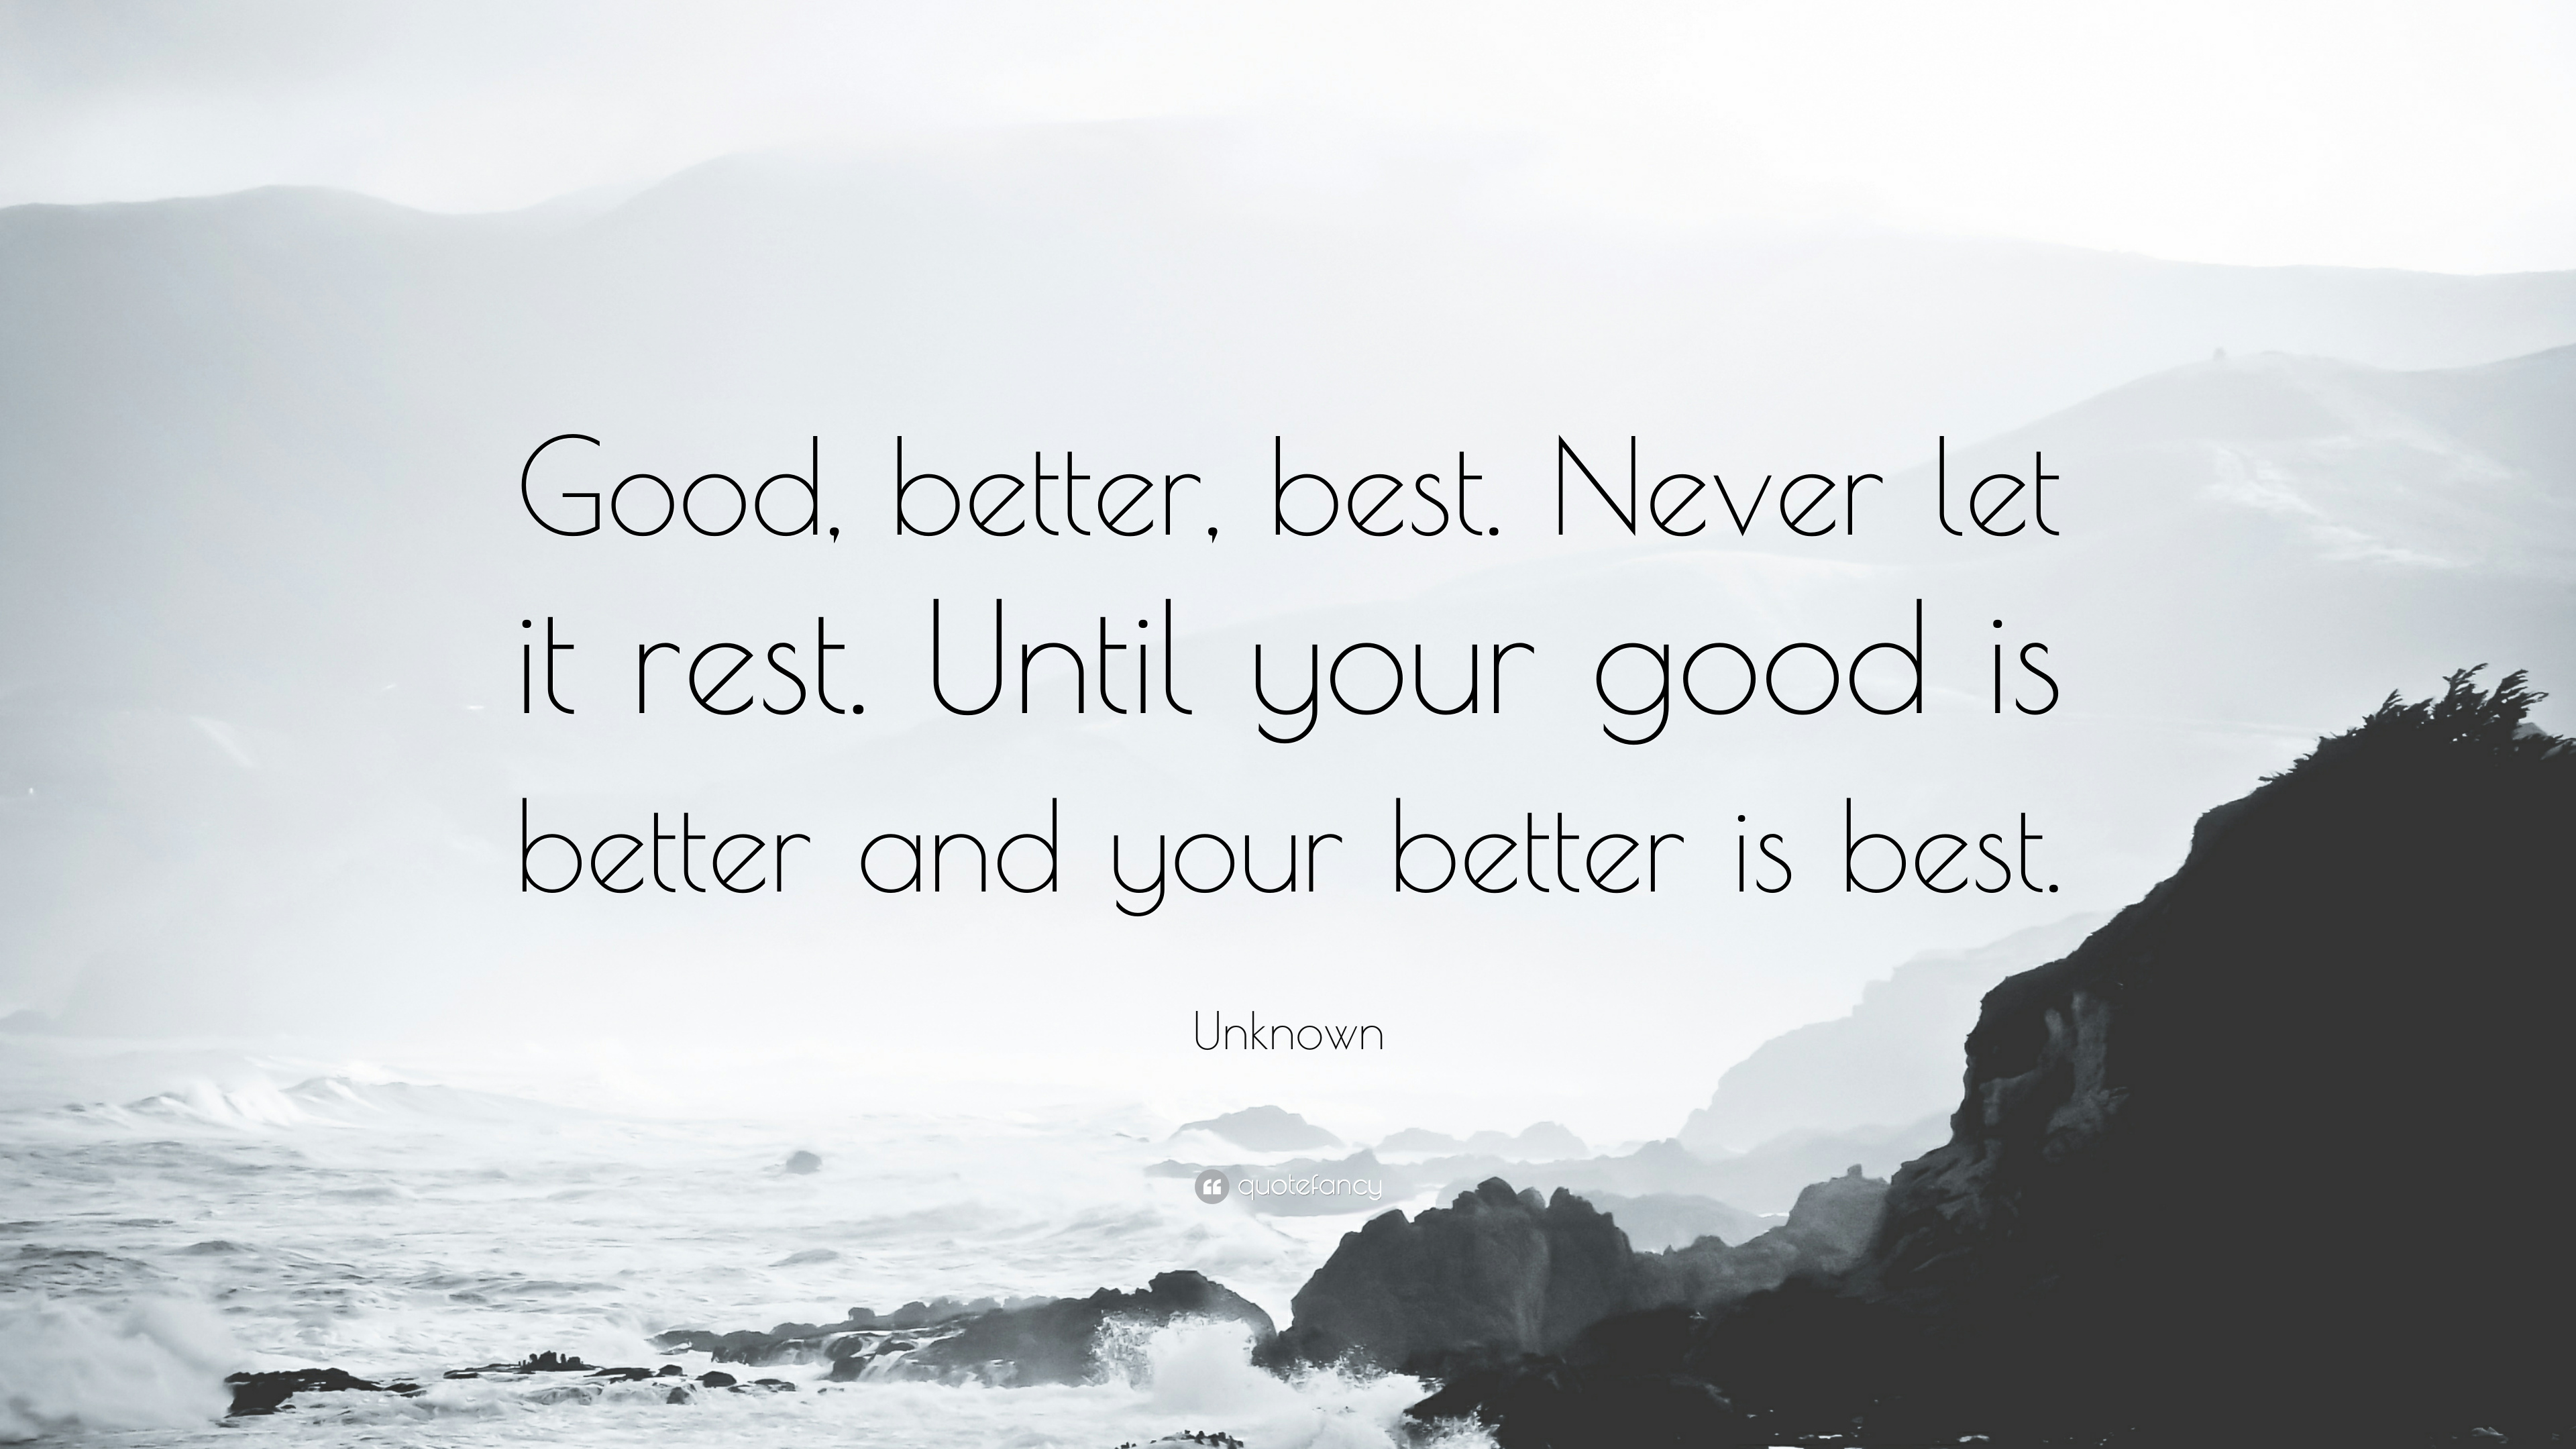 What is best: good, better, the best 12